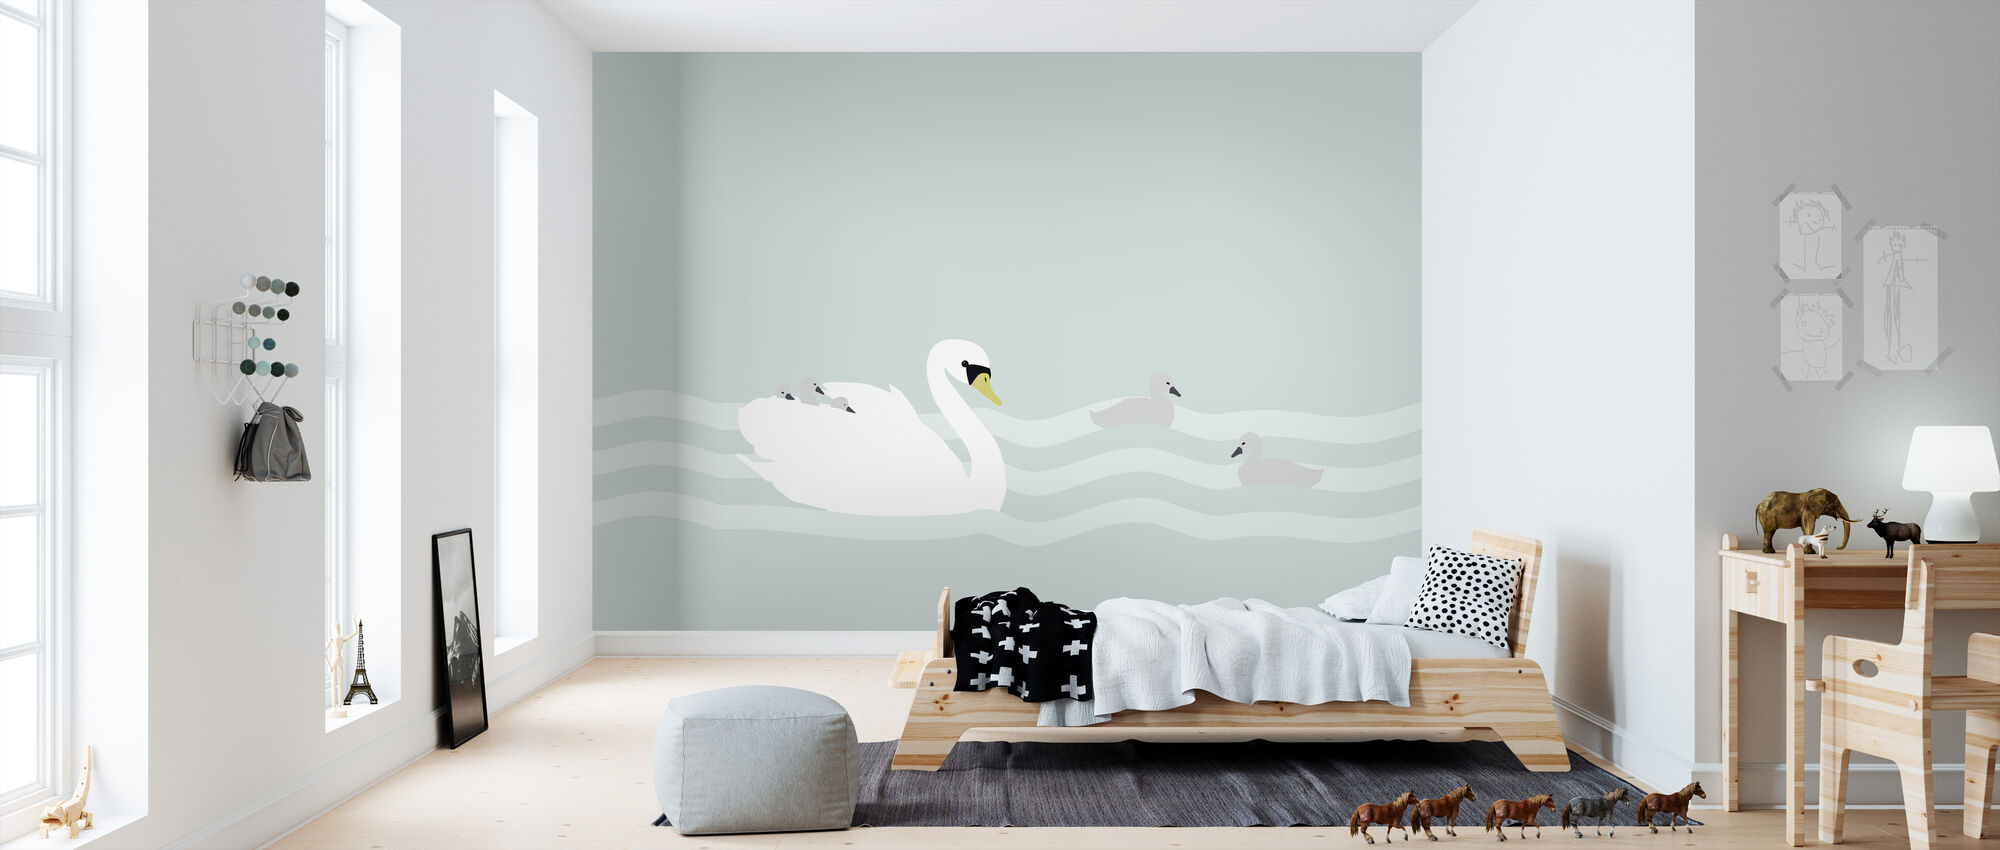 Swan mom and bebe - Jade - Wallpaper - Kids Room